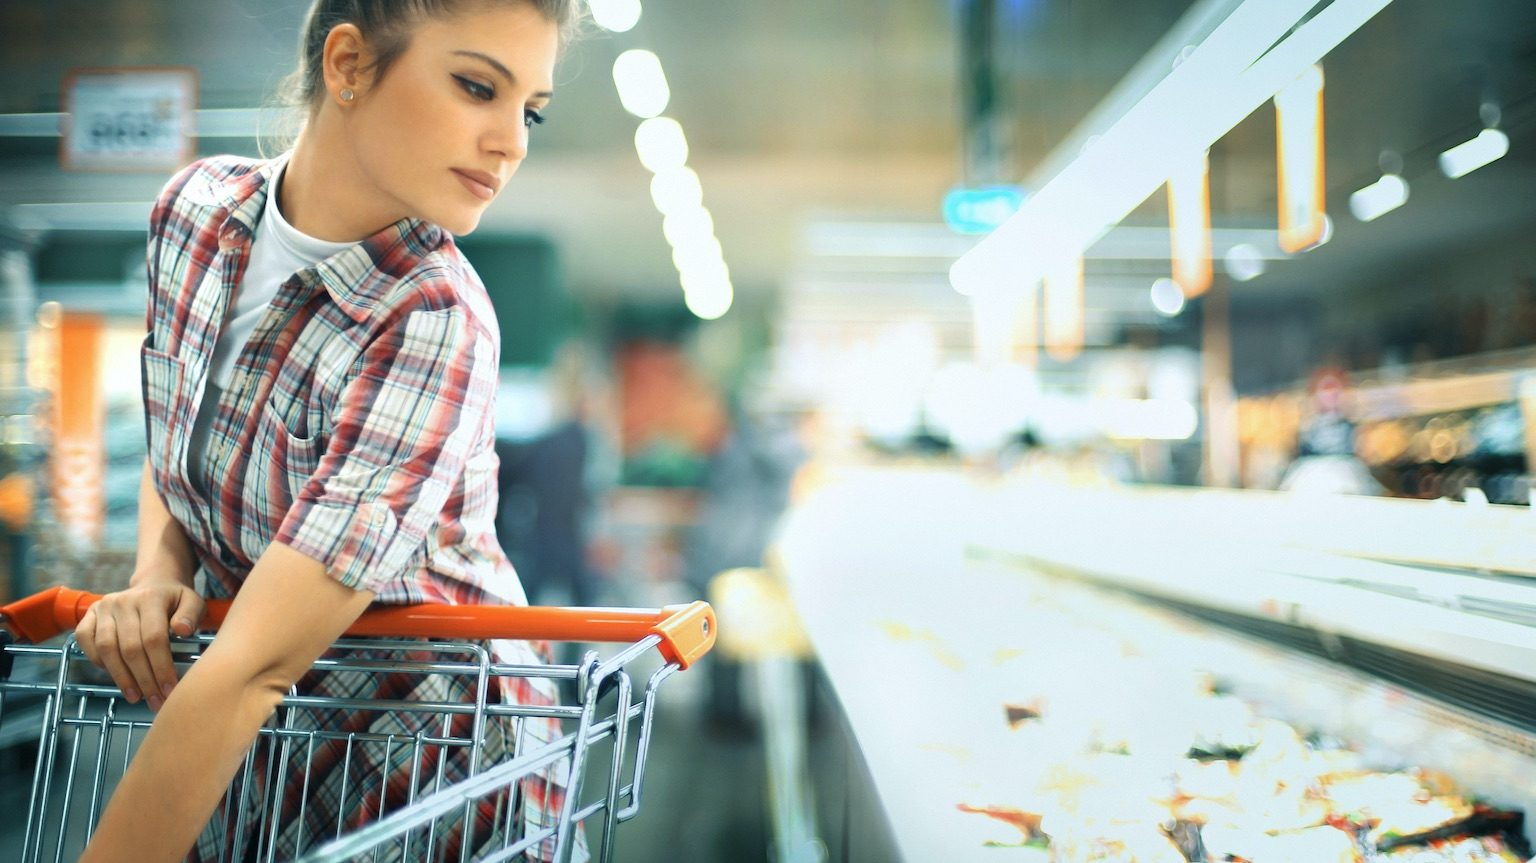 Closeup of mid 20's blond woman doing her weekly shopping at local supermarket. She's at refrigerated section and just put a certain product into her cart.